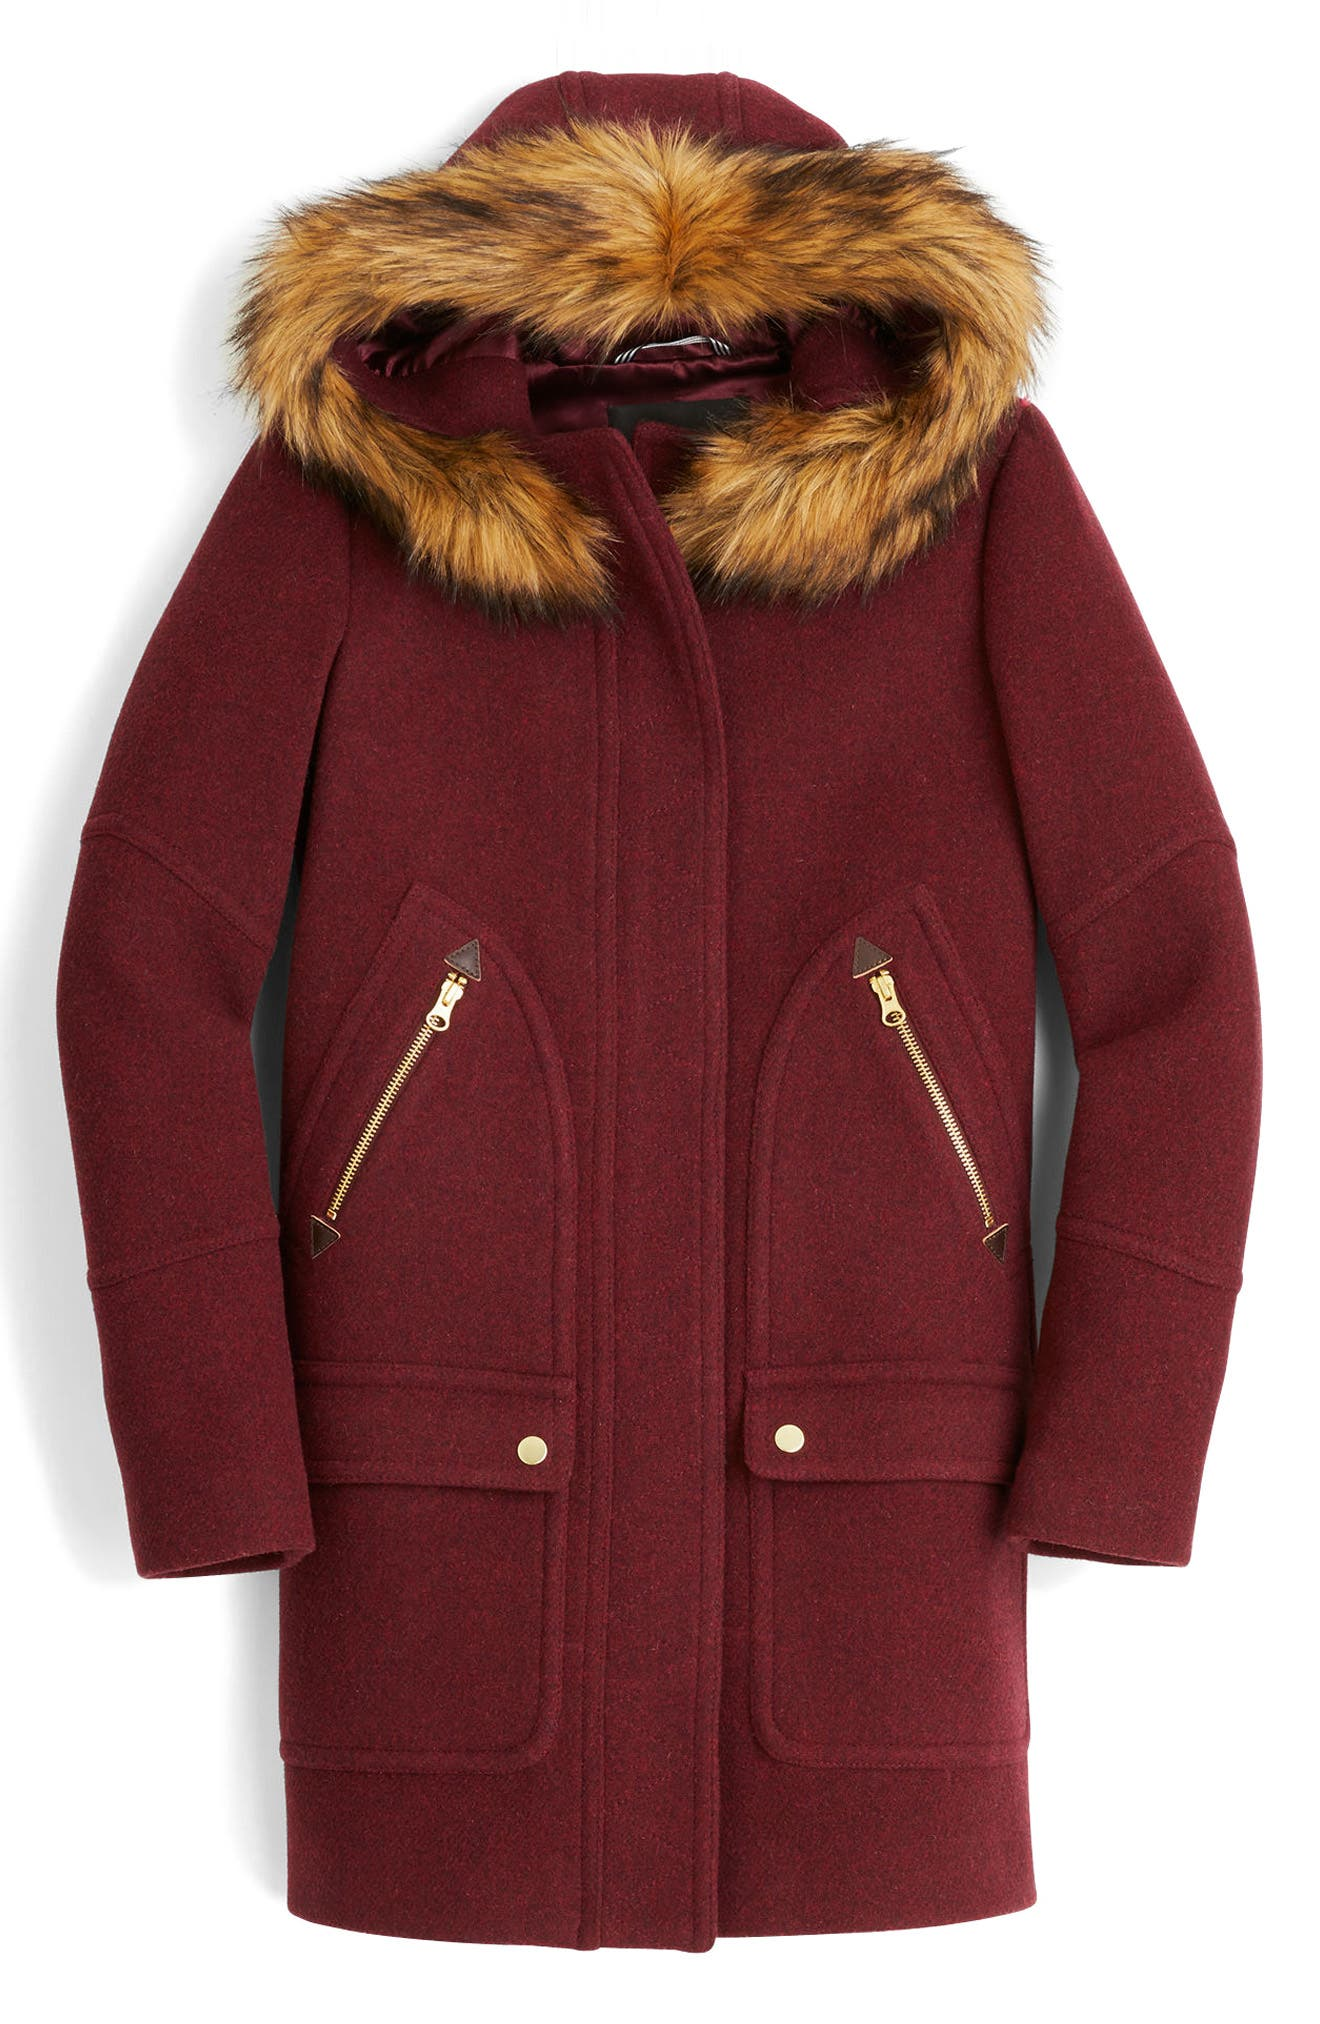 J.Crew Chateau Stadium Cloth Parka with Faux Fur Trim (Regular & Petite)